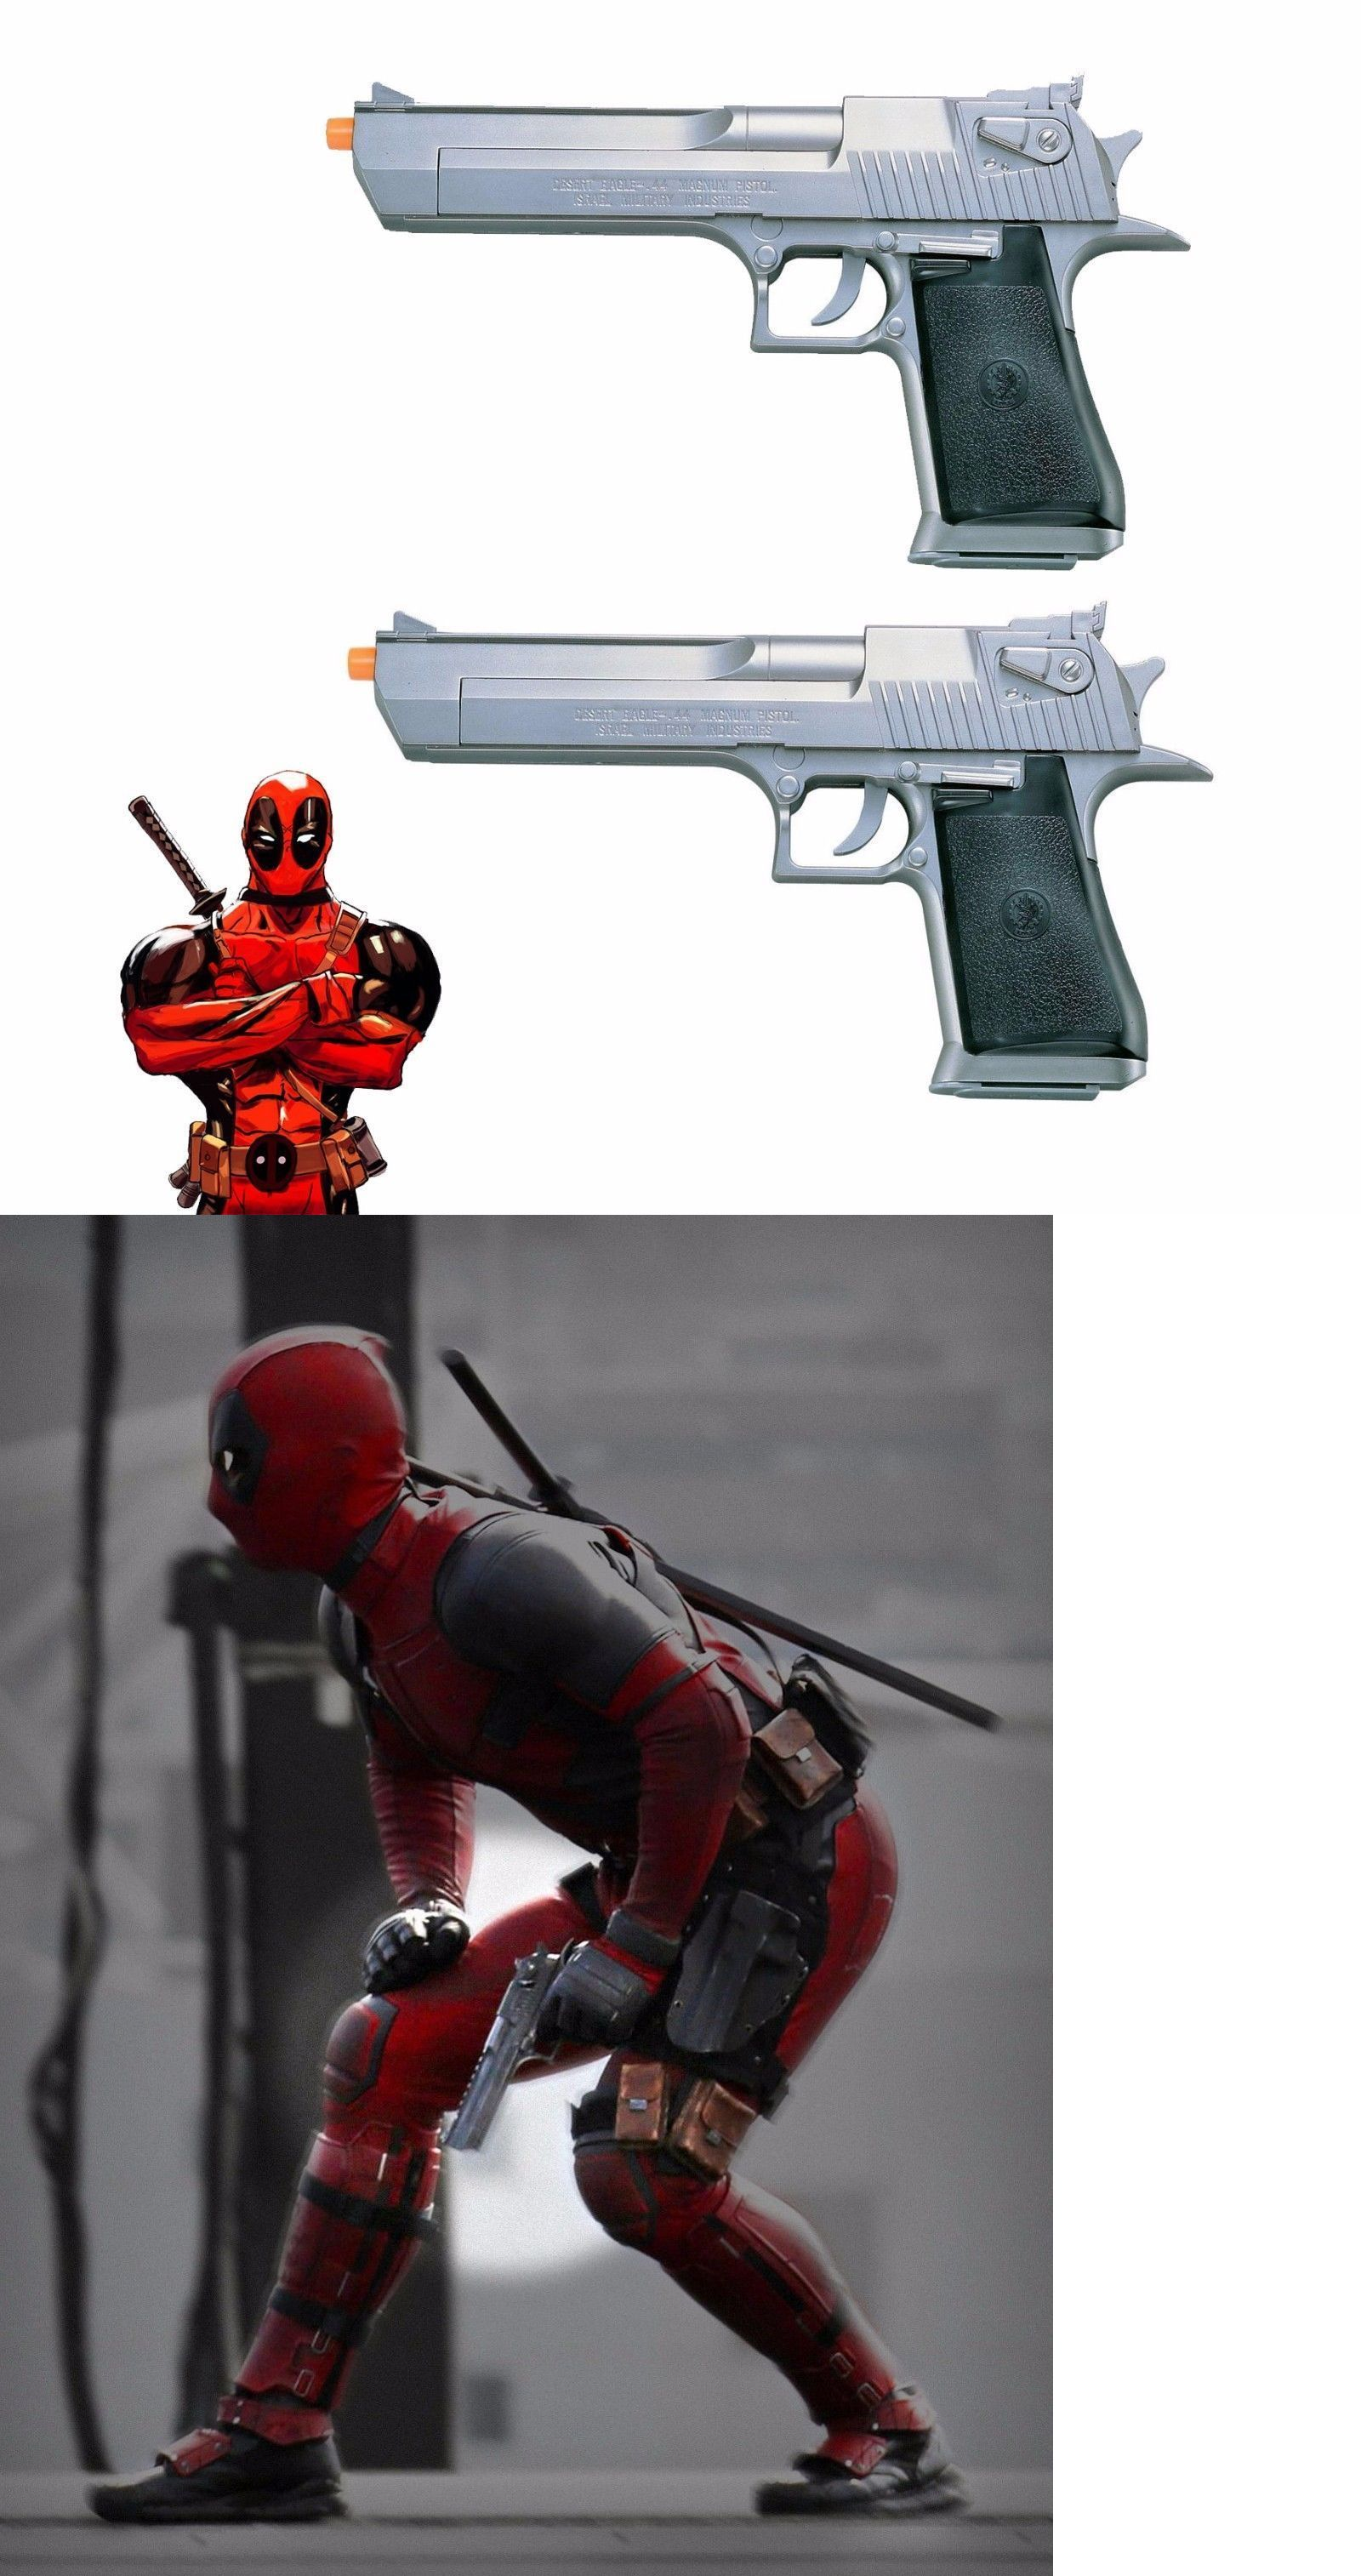 Pistol 160923: Deadpool Movie Dual Desert Eagle Gun Superhero Costume Cosplay Toy Props Airsoft -> BUY IT NOW ONLY: $84.95 on eBay!